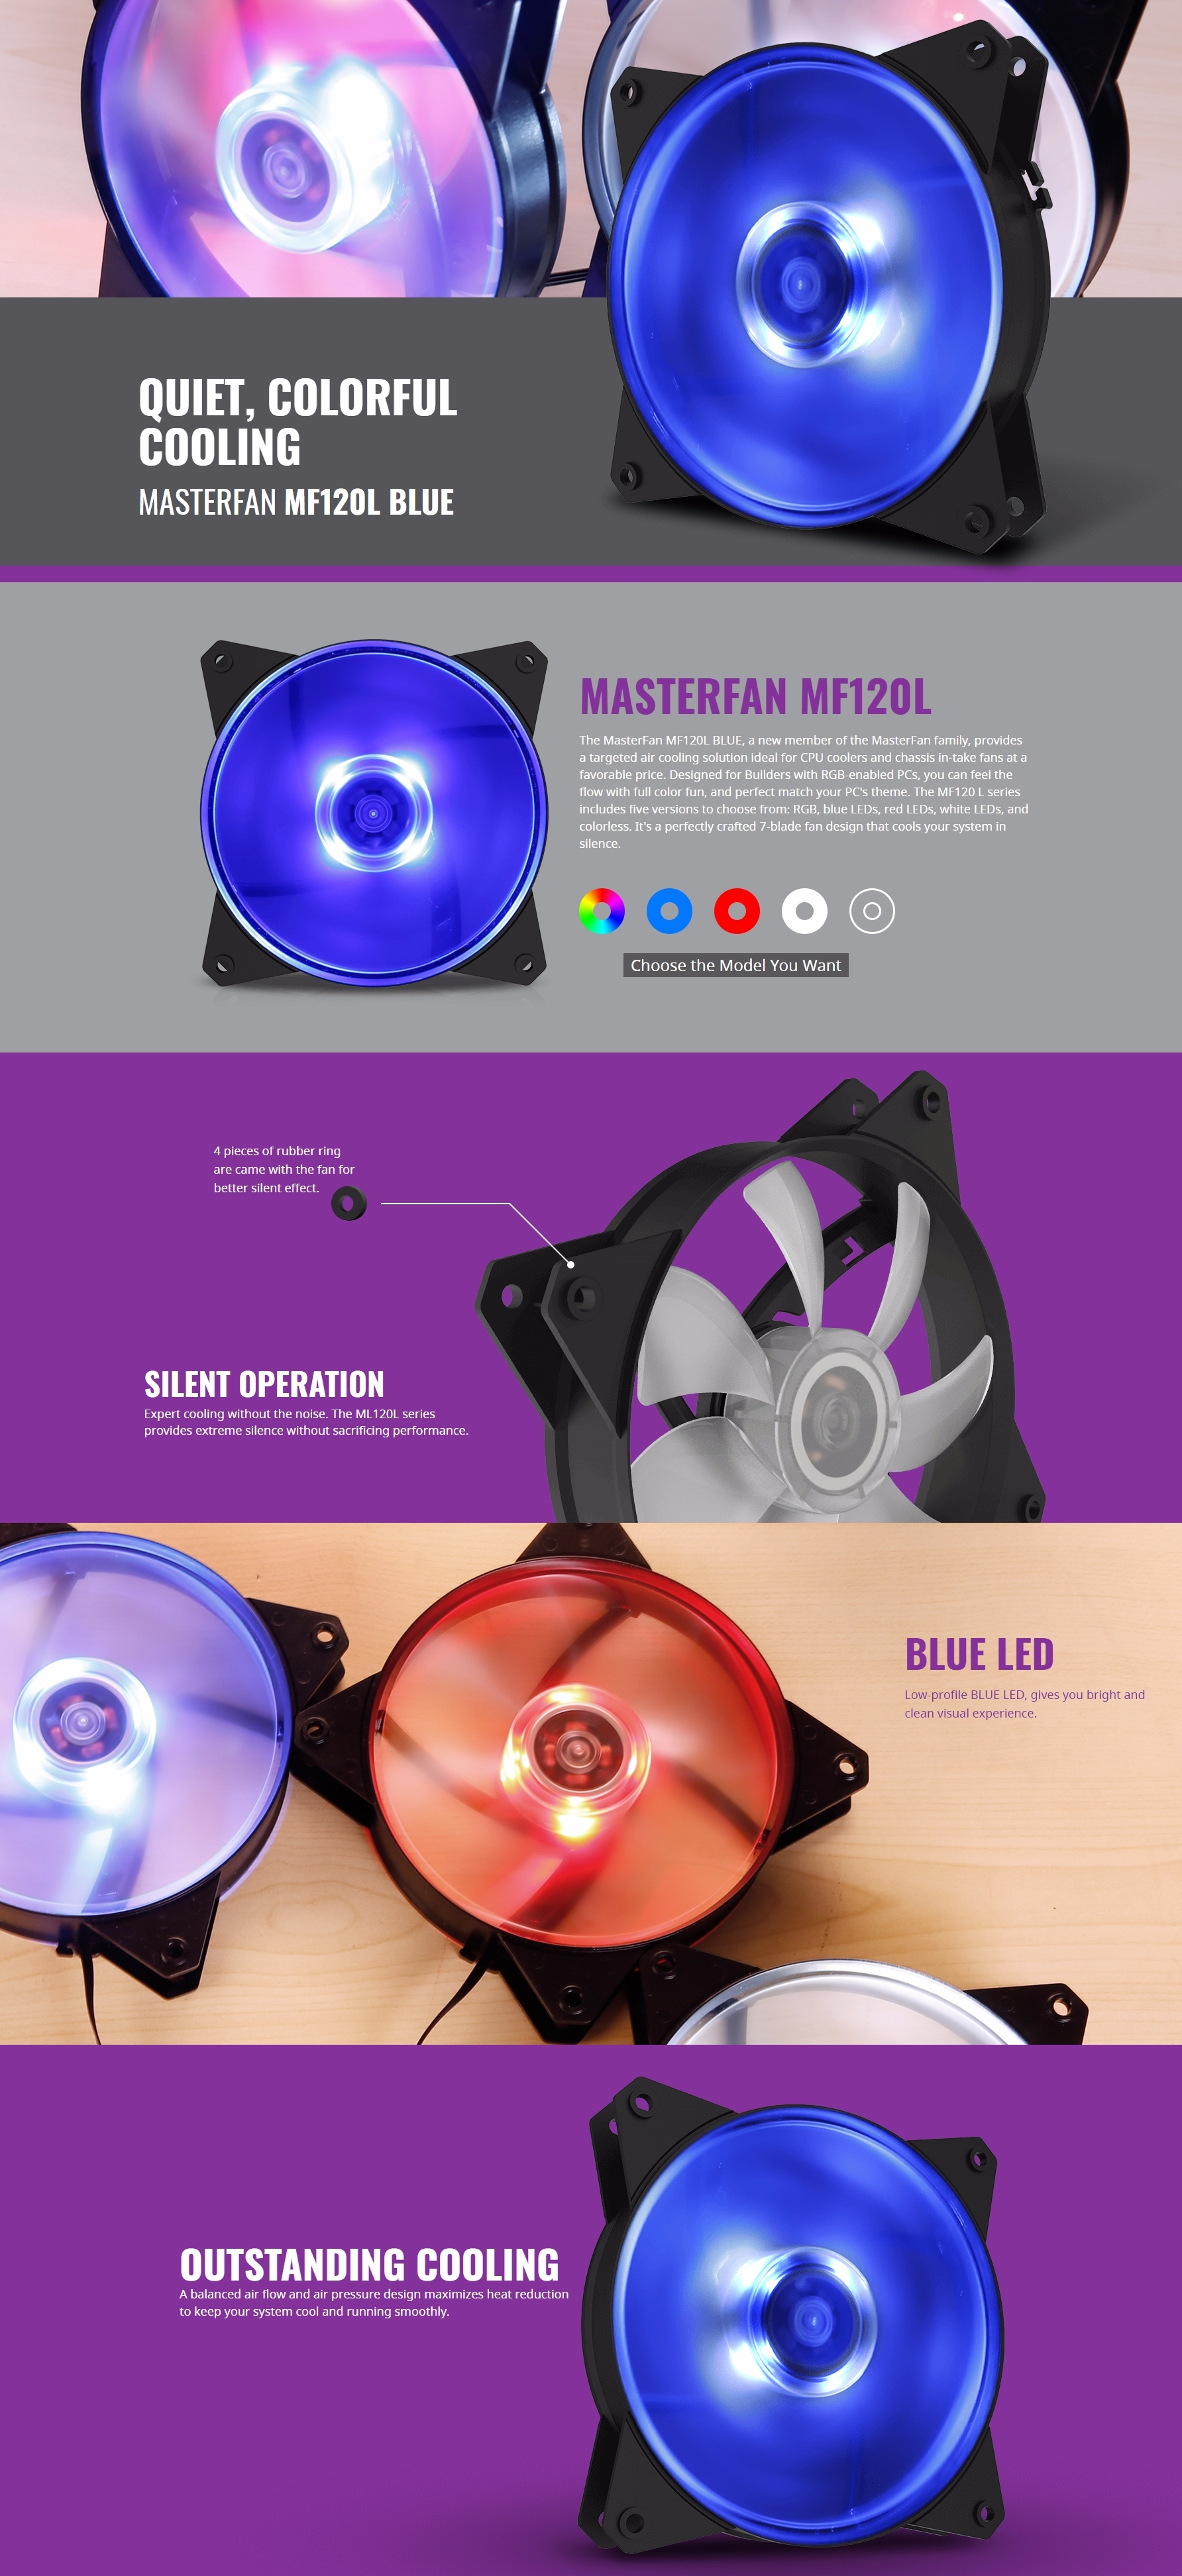 A large marketing image providing additional information about the product Cooler Master MasterFan Lite MF120L 120mm Blue LED Fan - Additional alt info not provided